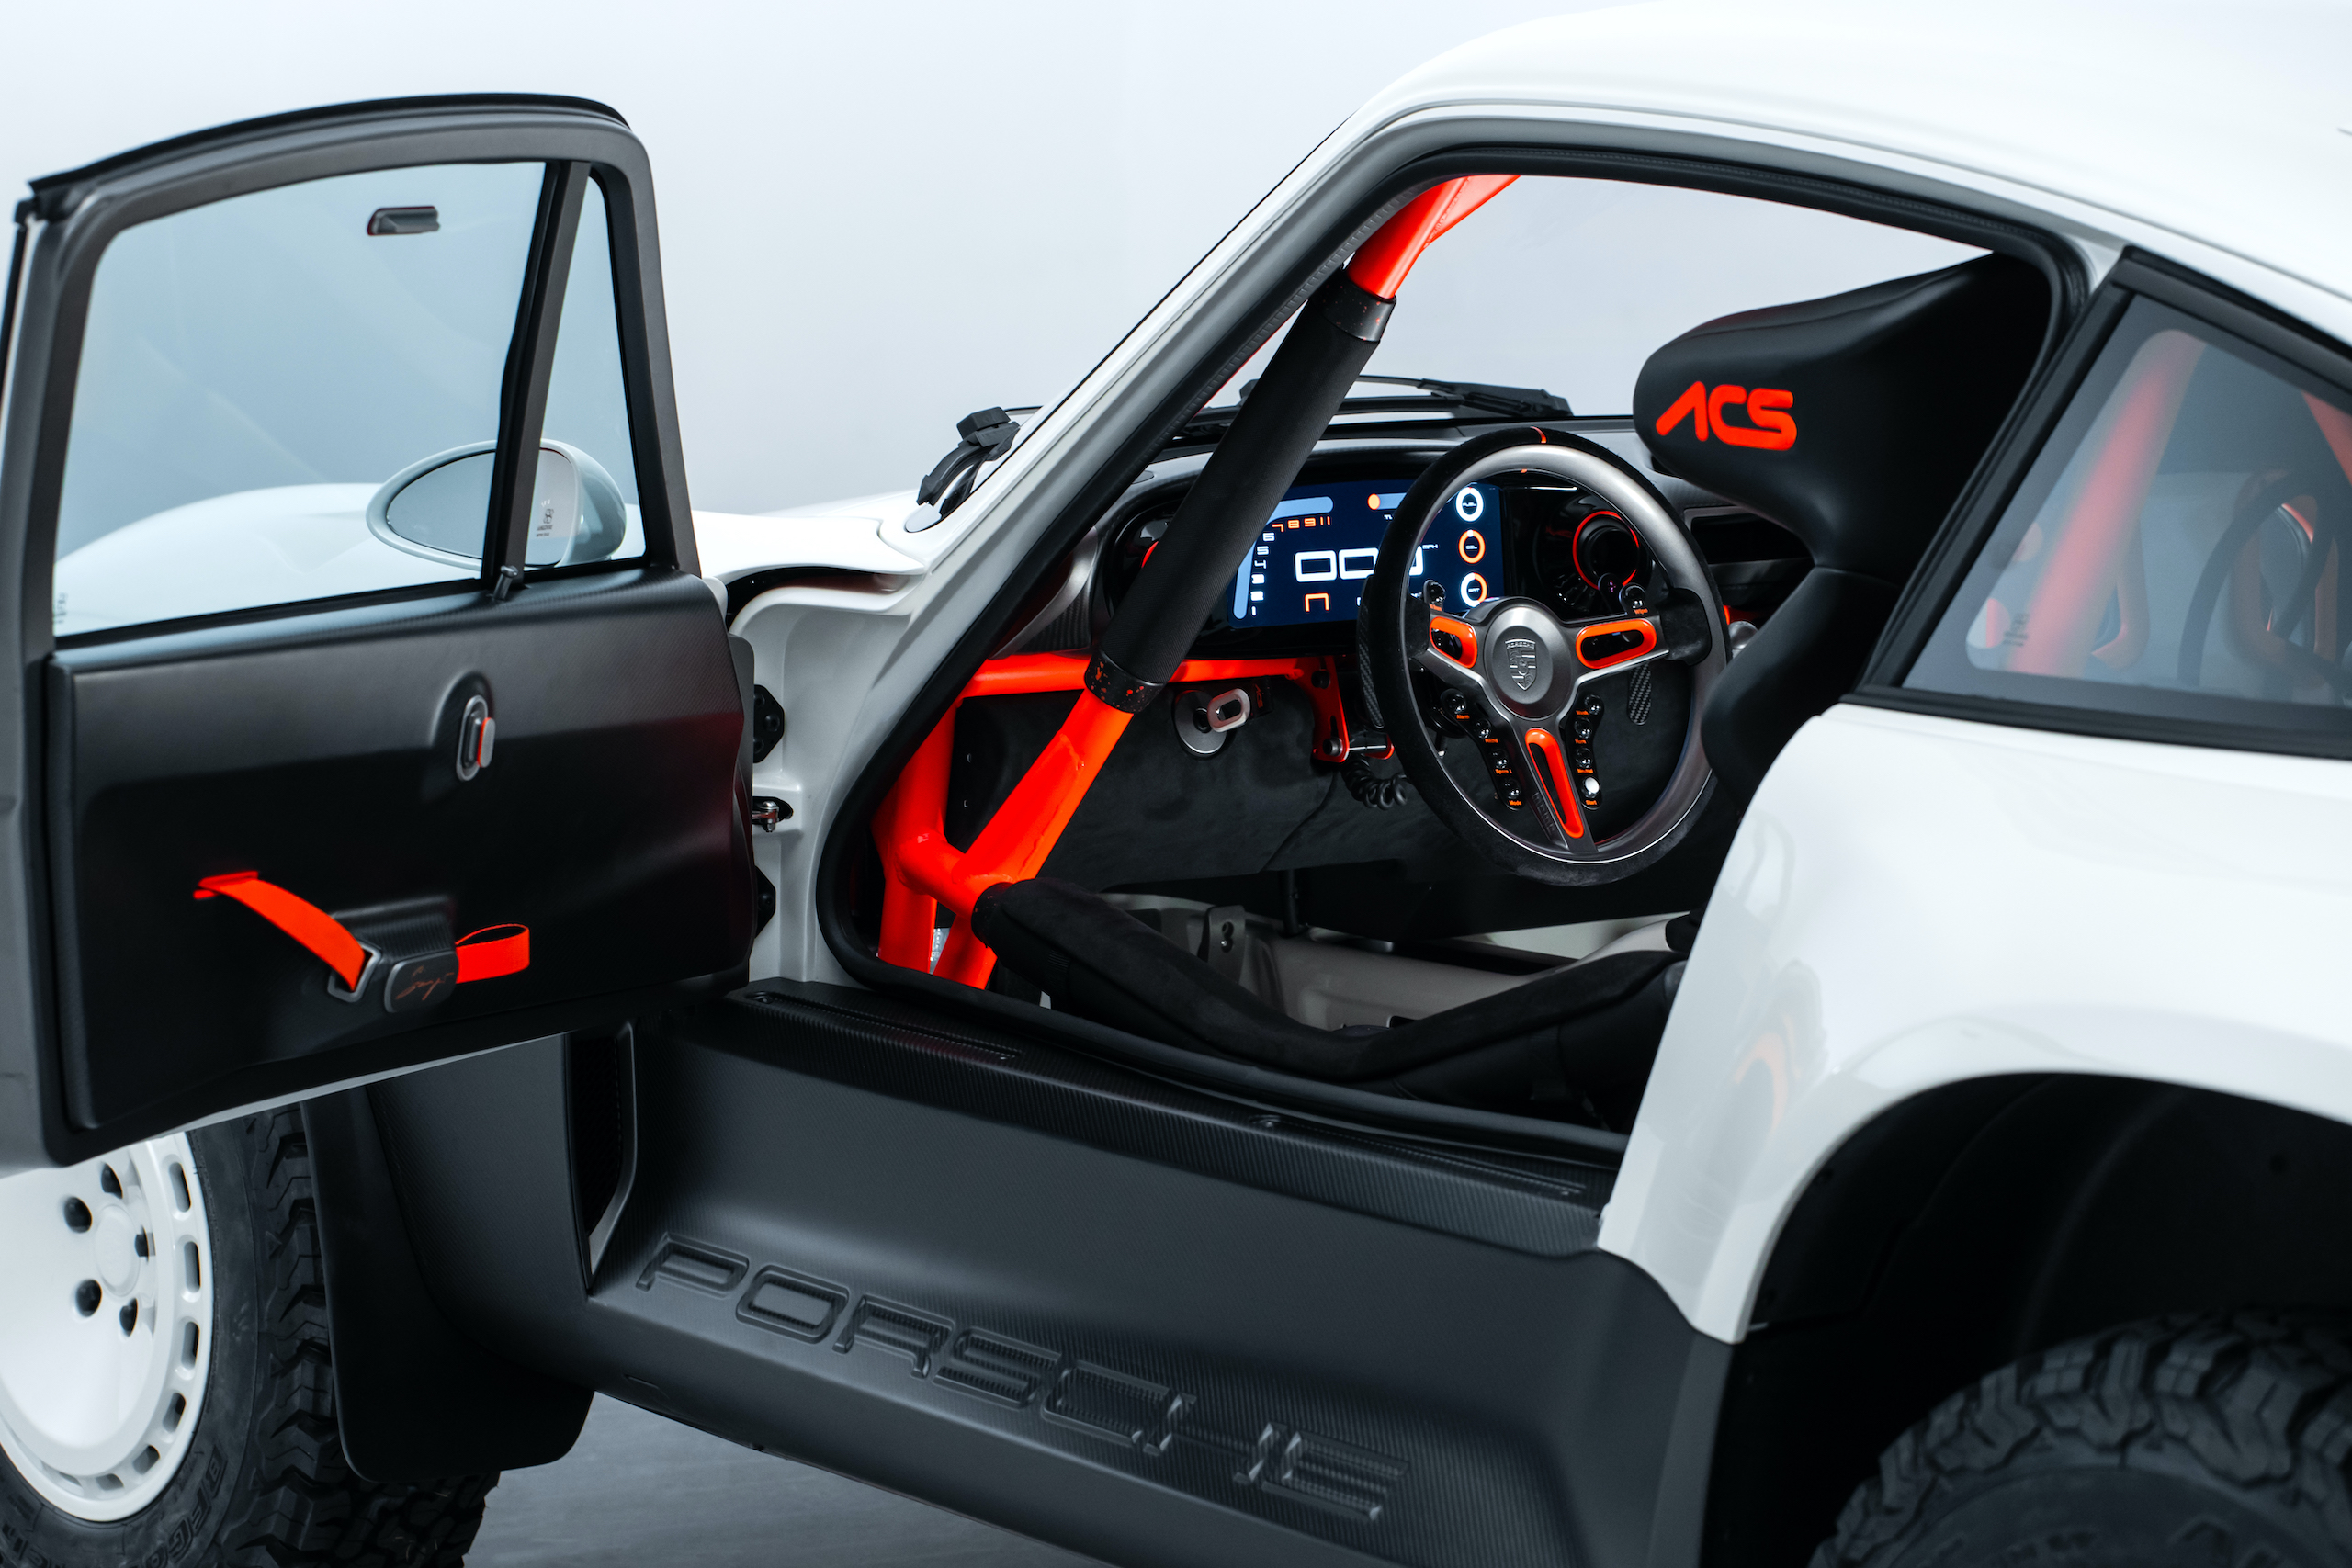 Singer All-Terrain Competition Study interior door opened